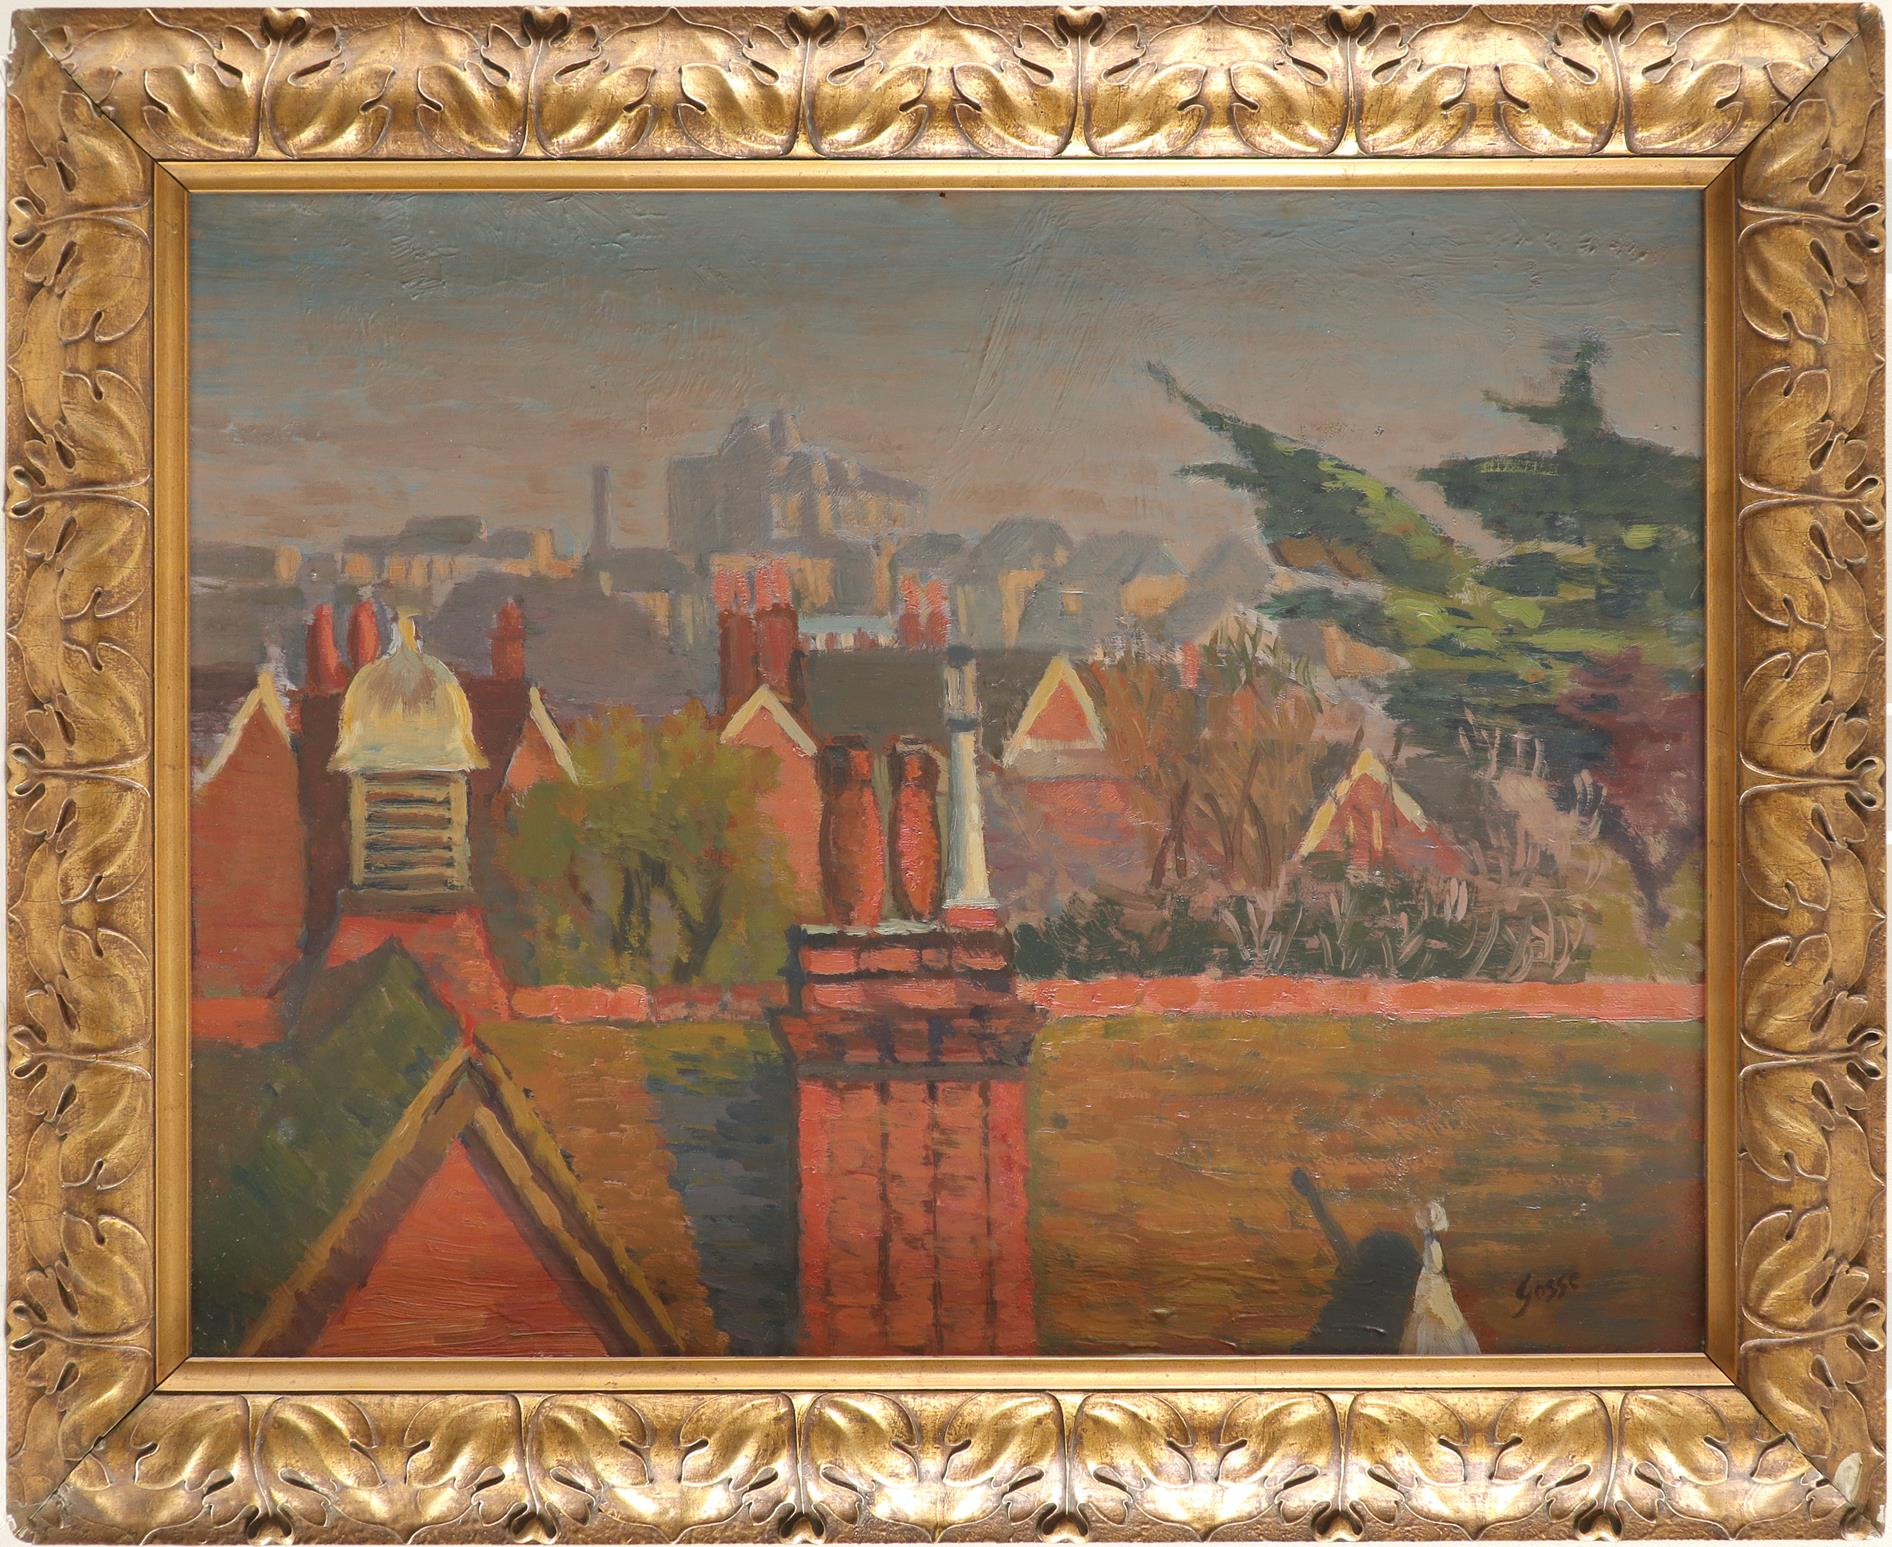 ‡Sylvia Gosse (1881-1968) Over the rooftops Signed Gosse (lower right) Oil on board 45.8 x 60.9cm - Image 2 of 3